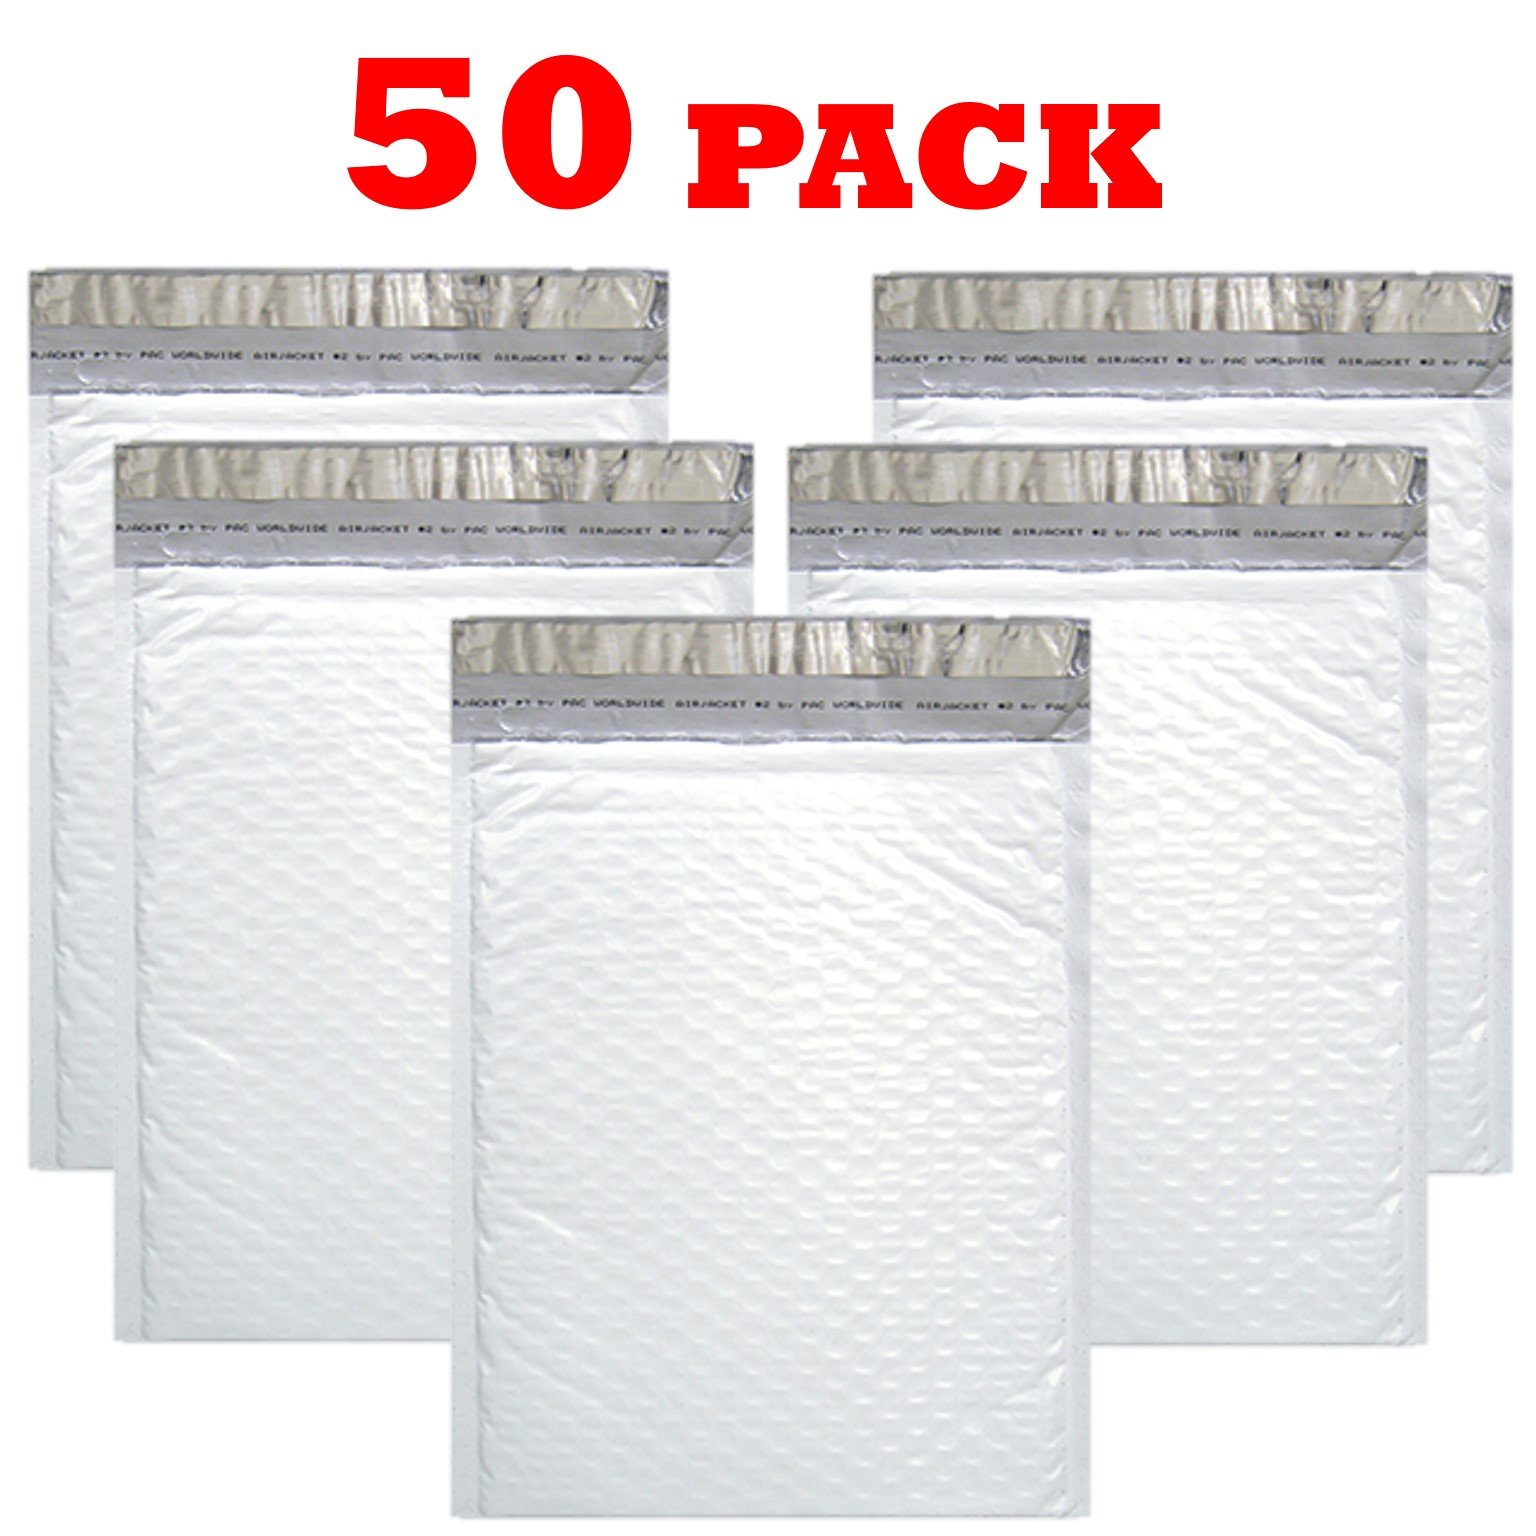 OfficeKit Poly Bubble Mailers #2 8.5X12 inches Shipping Padded Envelopes Self Seal Cushioned Mailing Waterproof Envelope Bags Packaging Materials Supplies 50 Pack